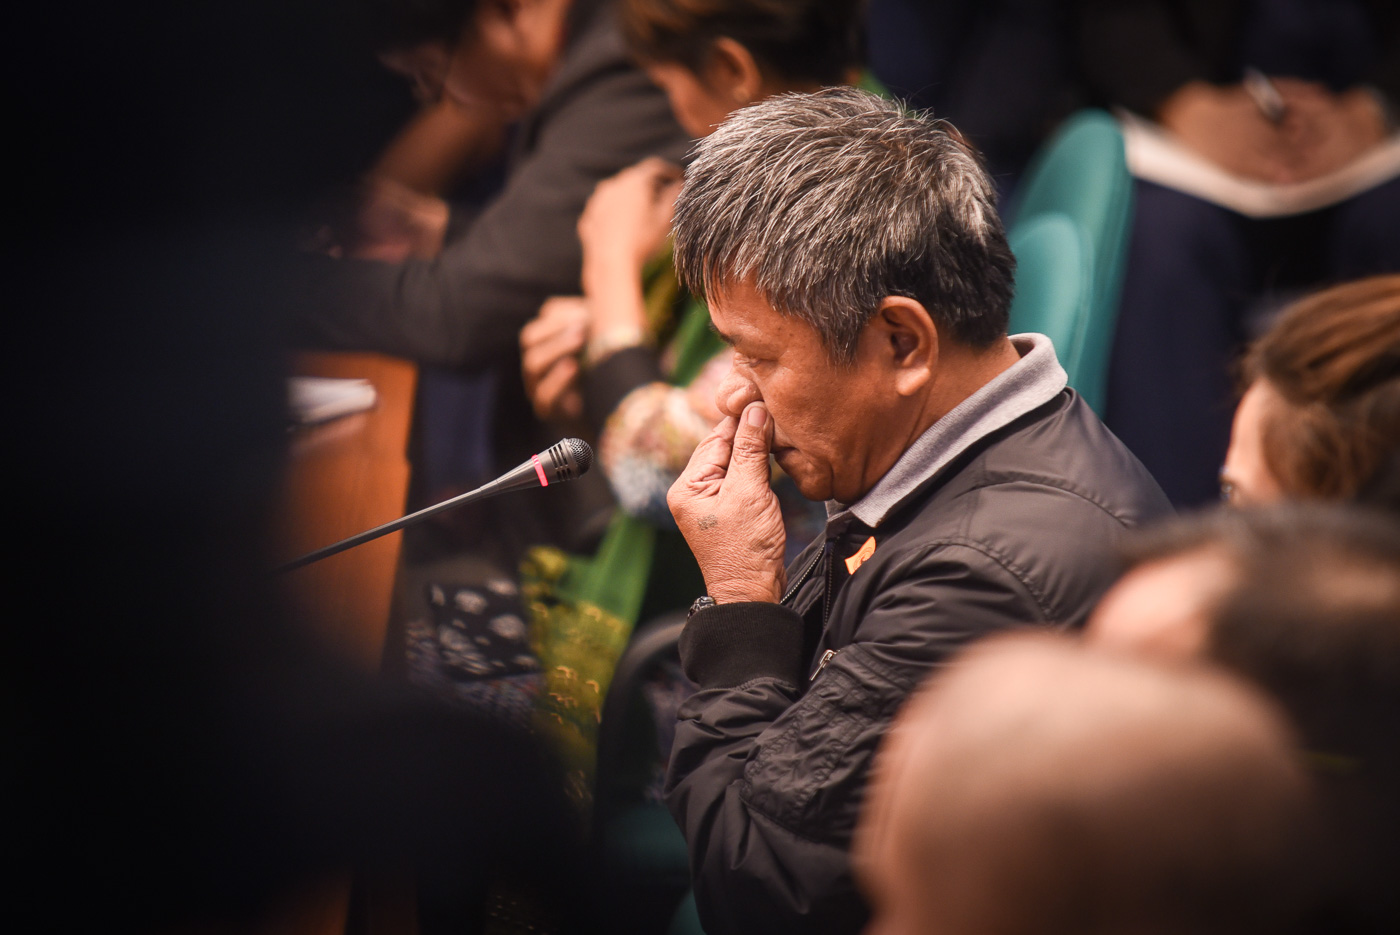 WITNESS. Edgar Matobato testifying at the Senate inquiry into the spate of extrajudicial killings and summary executions under the Duterte administration on September 15, 2016. Photo by LeAnne Jazul/Rappler